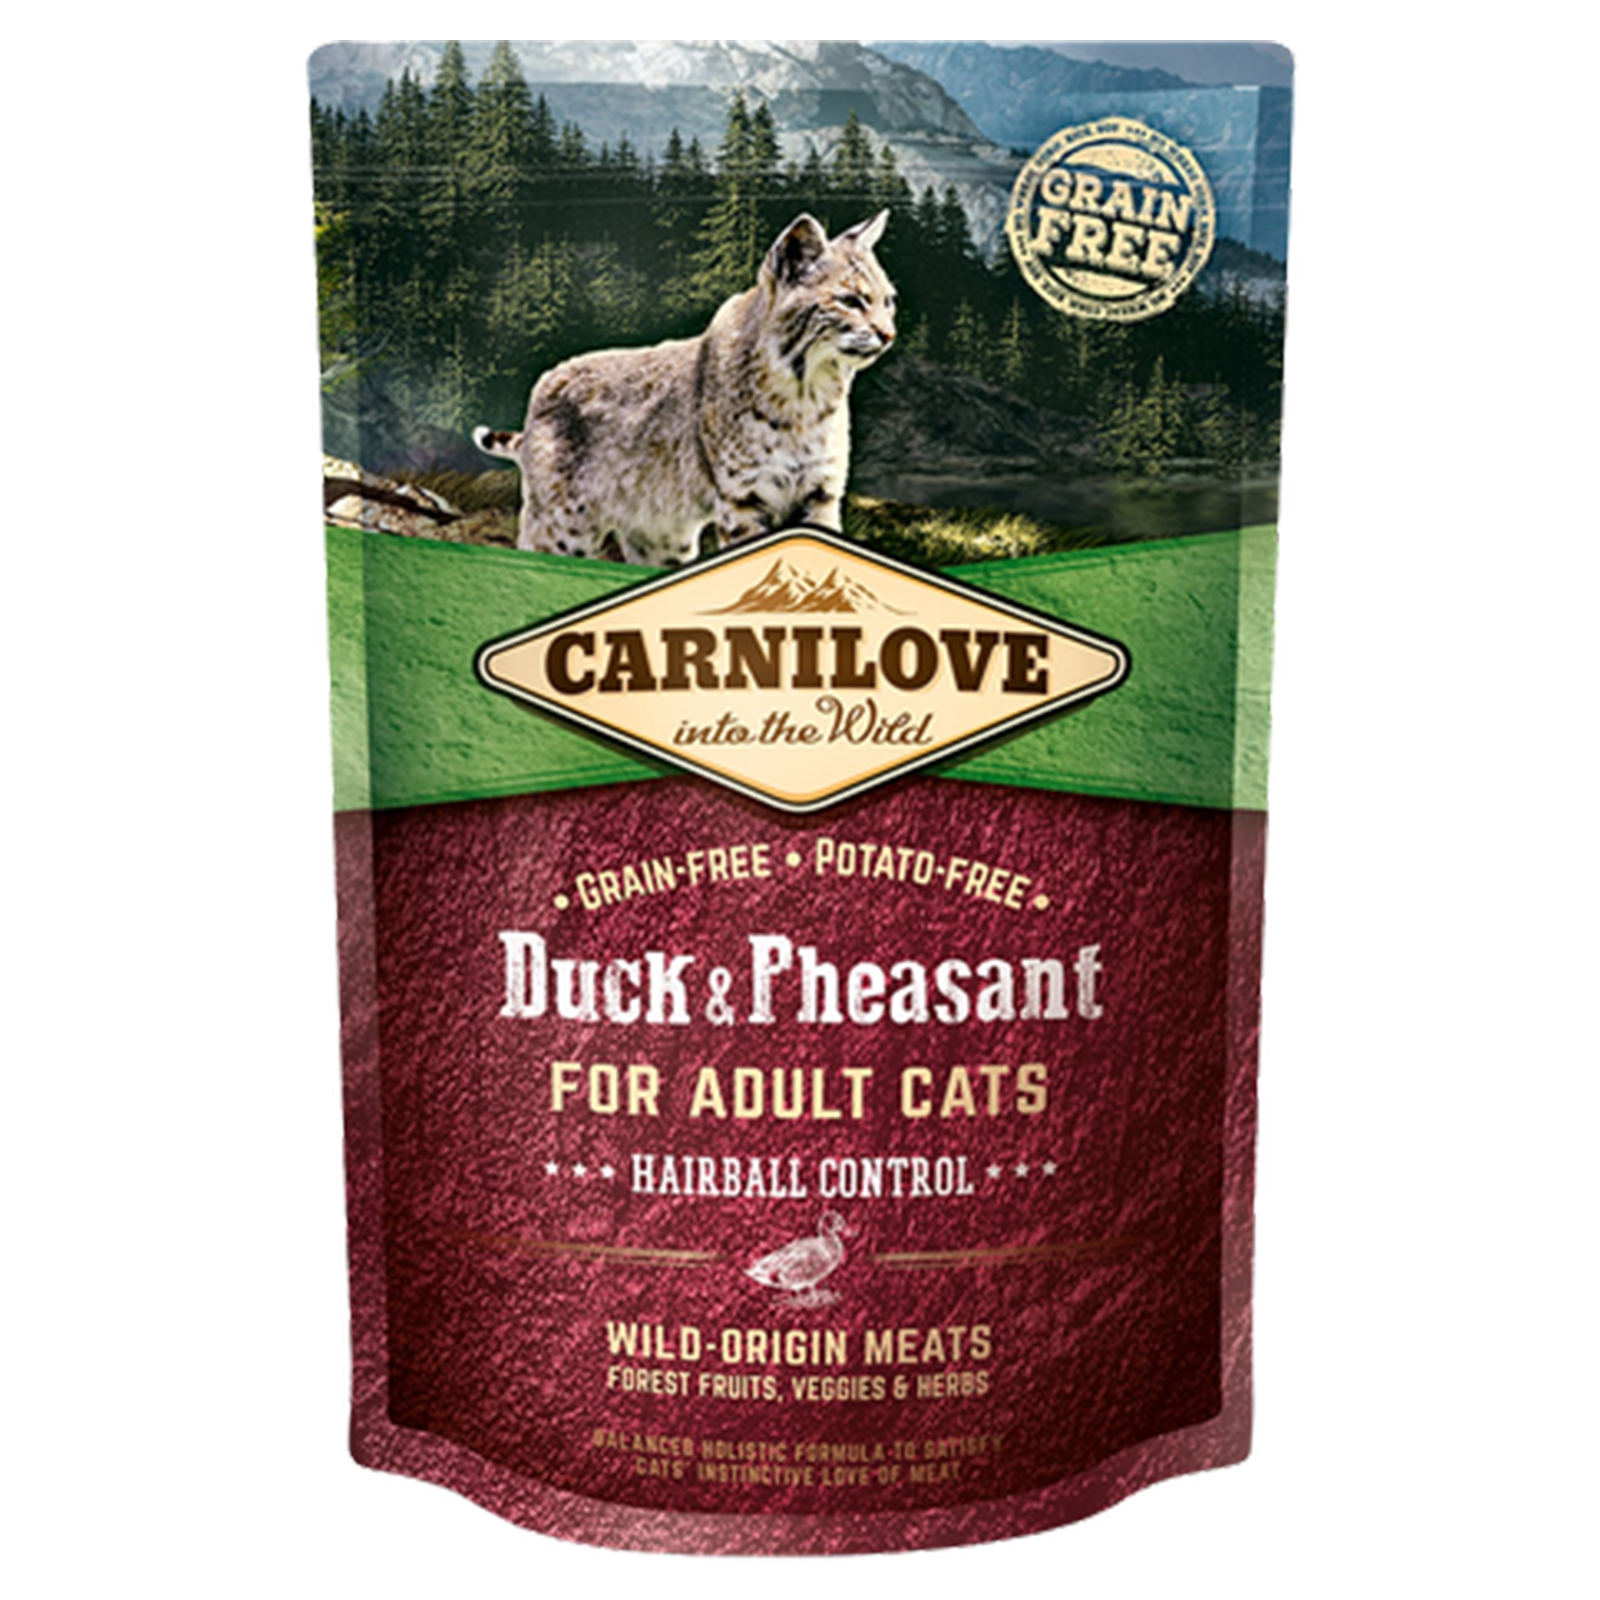 Carnilove Duck and Pheasant for Adult Cats, Hairball Control, 400 g imagine